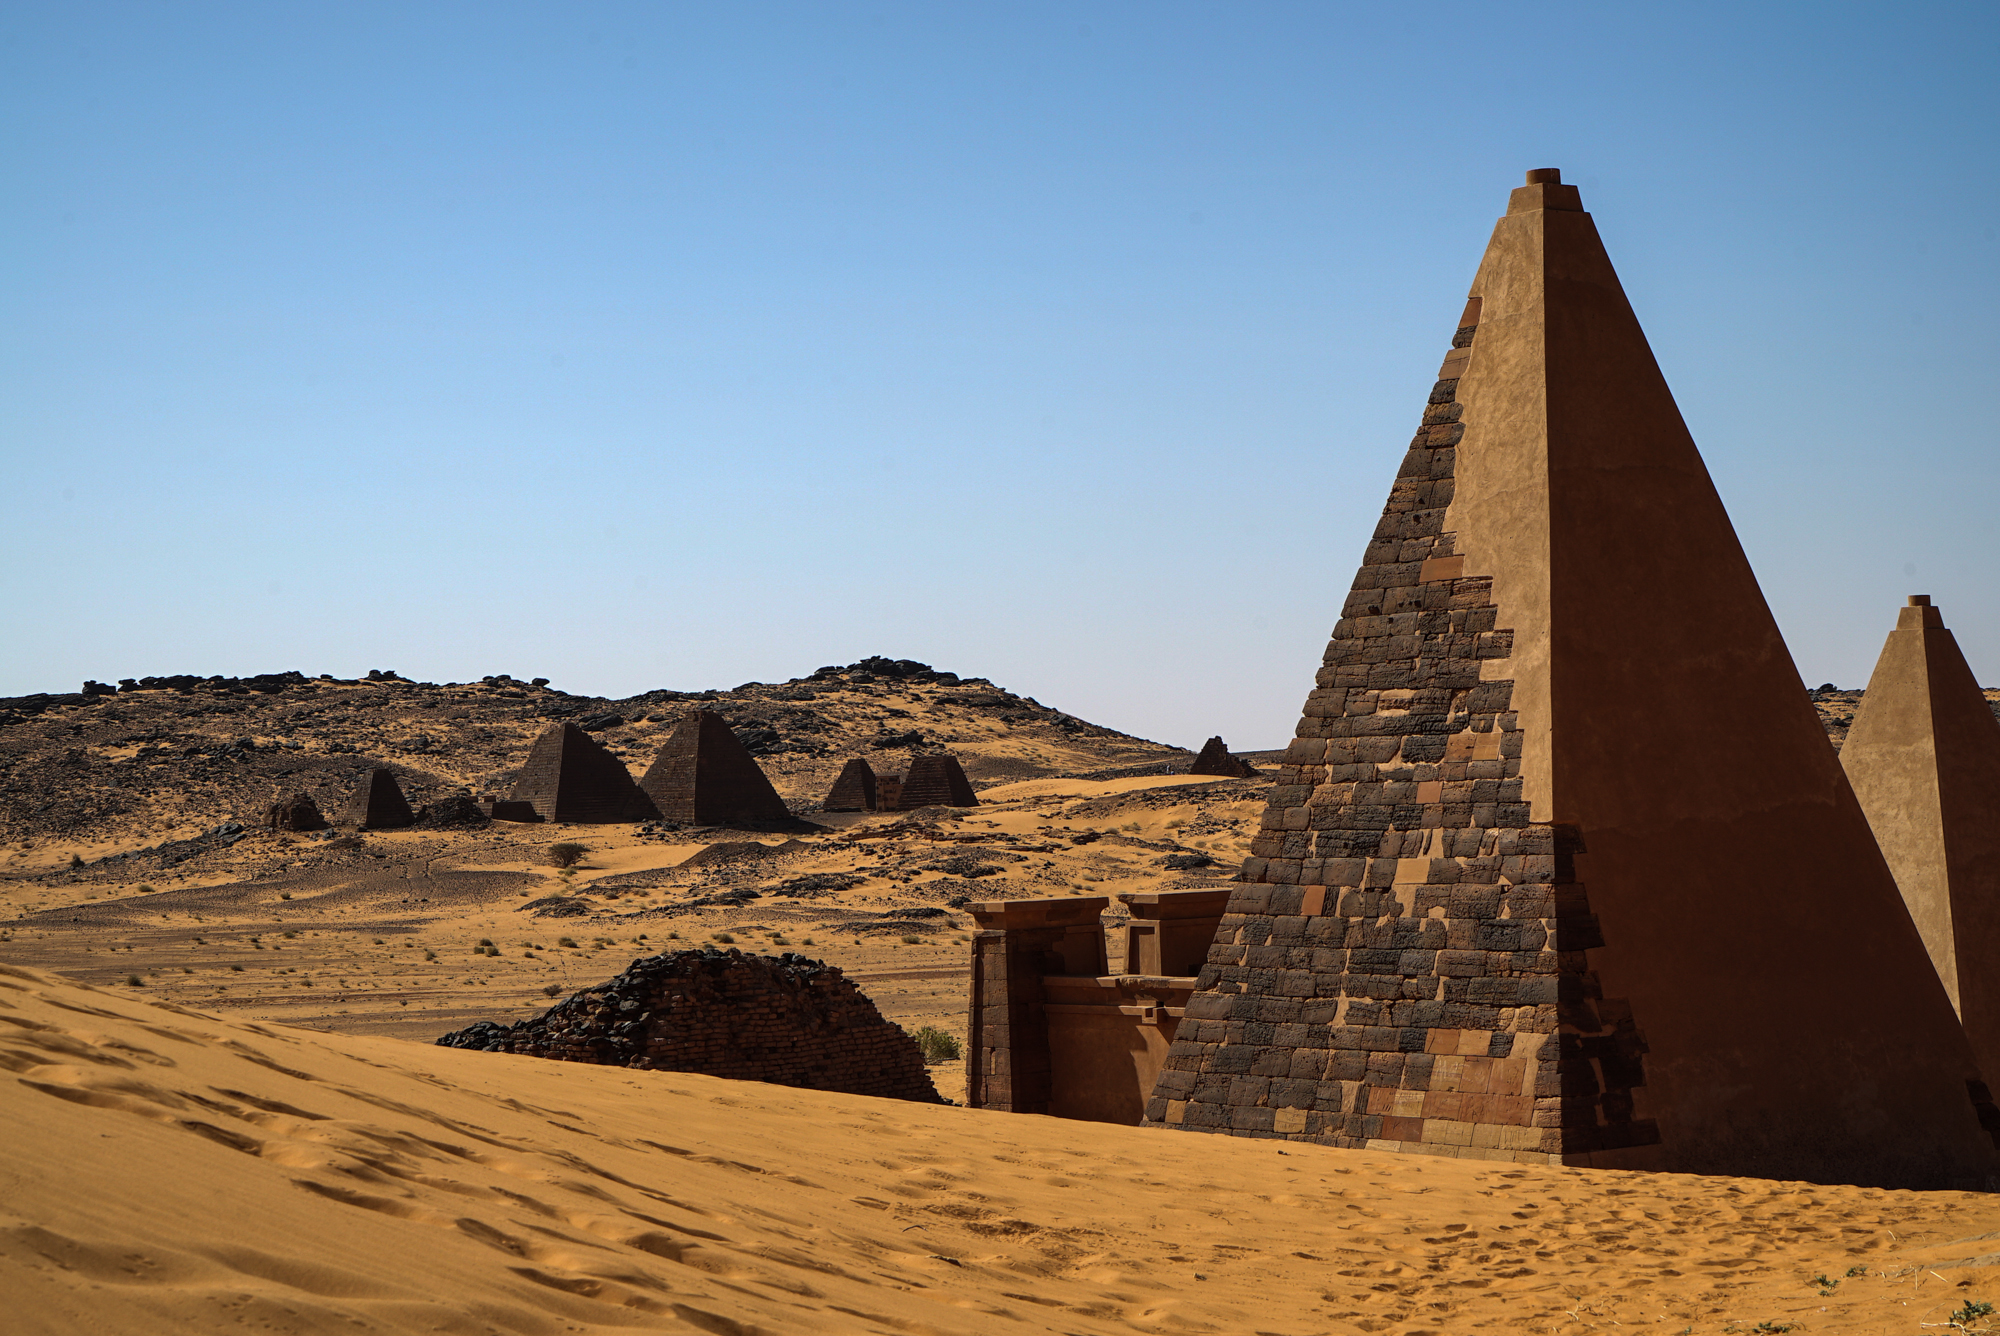 A few of the smaller pyramids have since been restored, looking new in comparison to their more battered neighbours. [Sorin Furcoi/Al Jazeera]